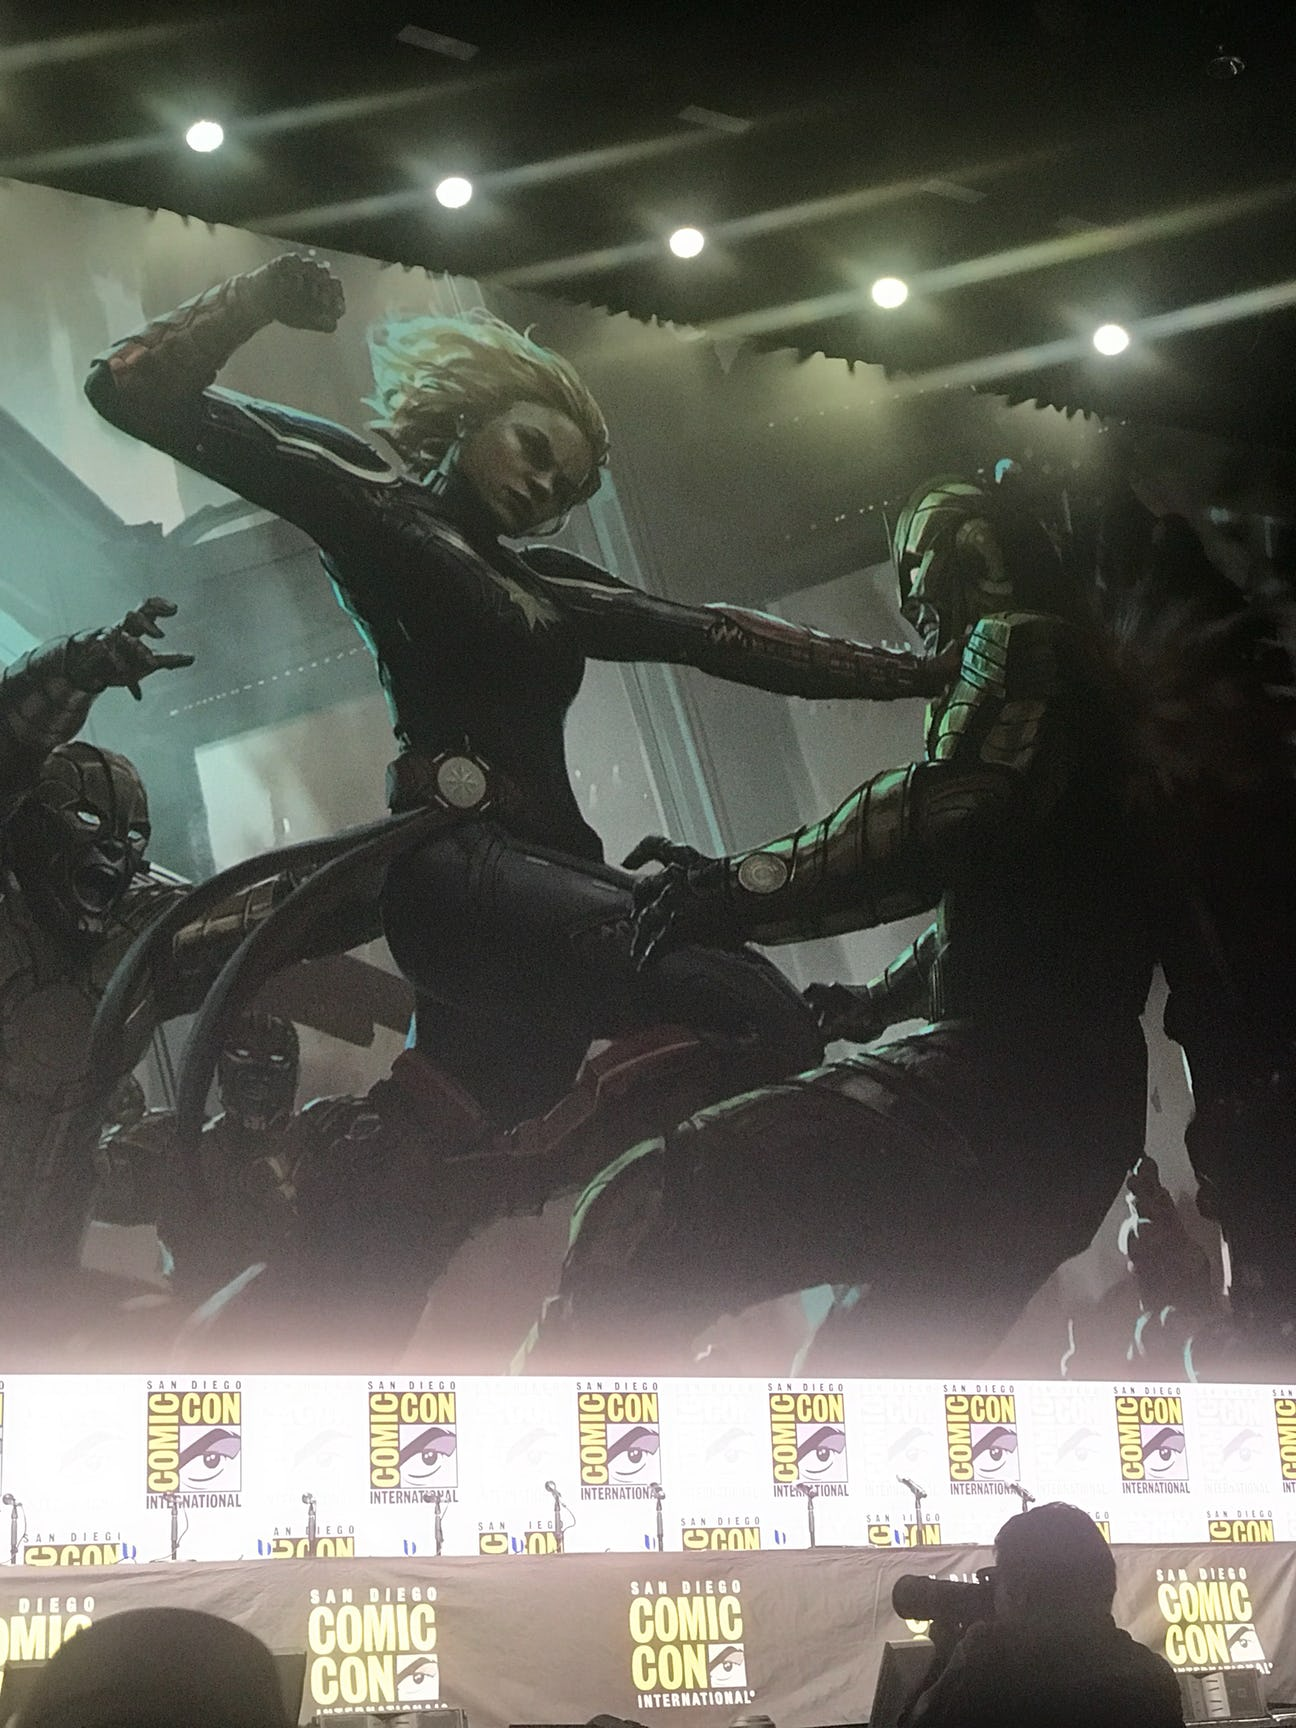 Captain Marvel concept art of her fighting someone in armor.